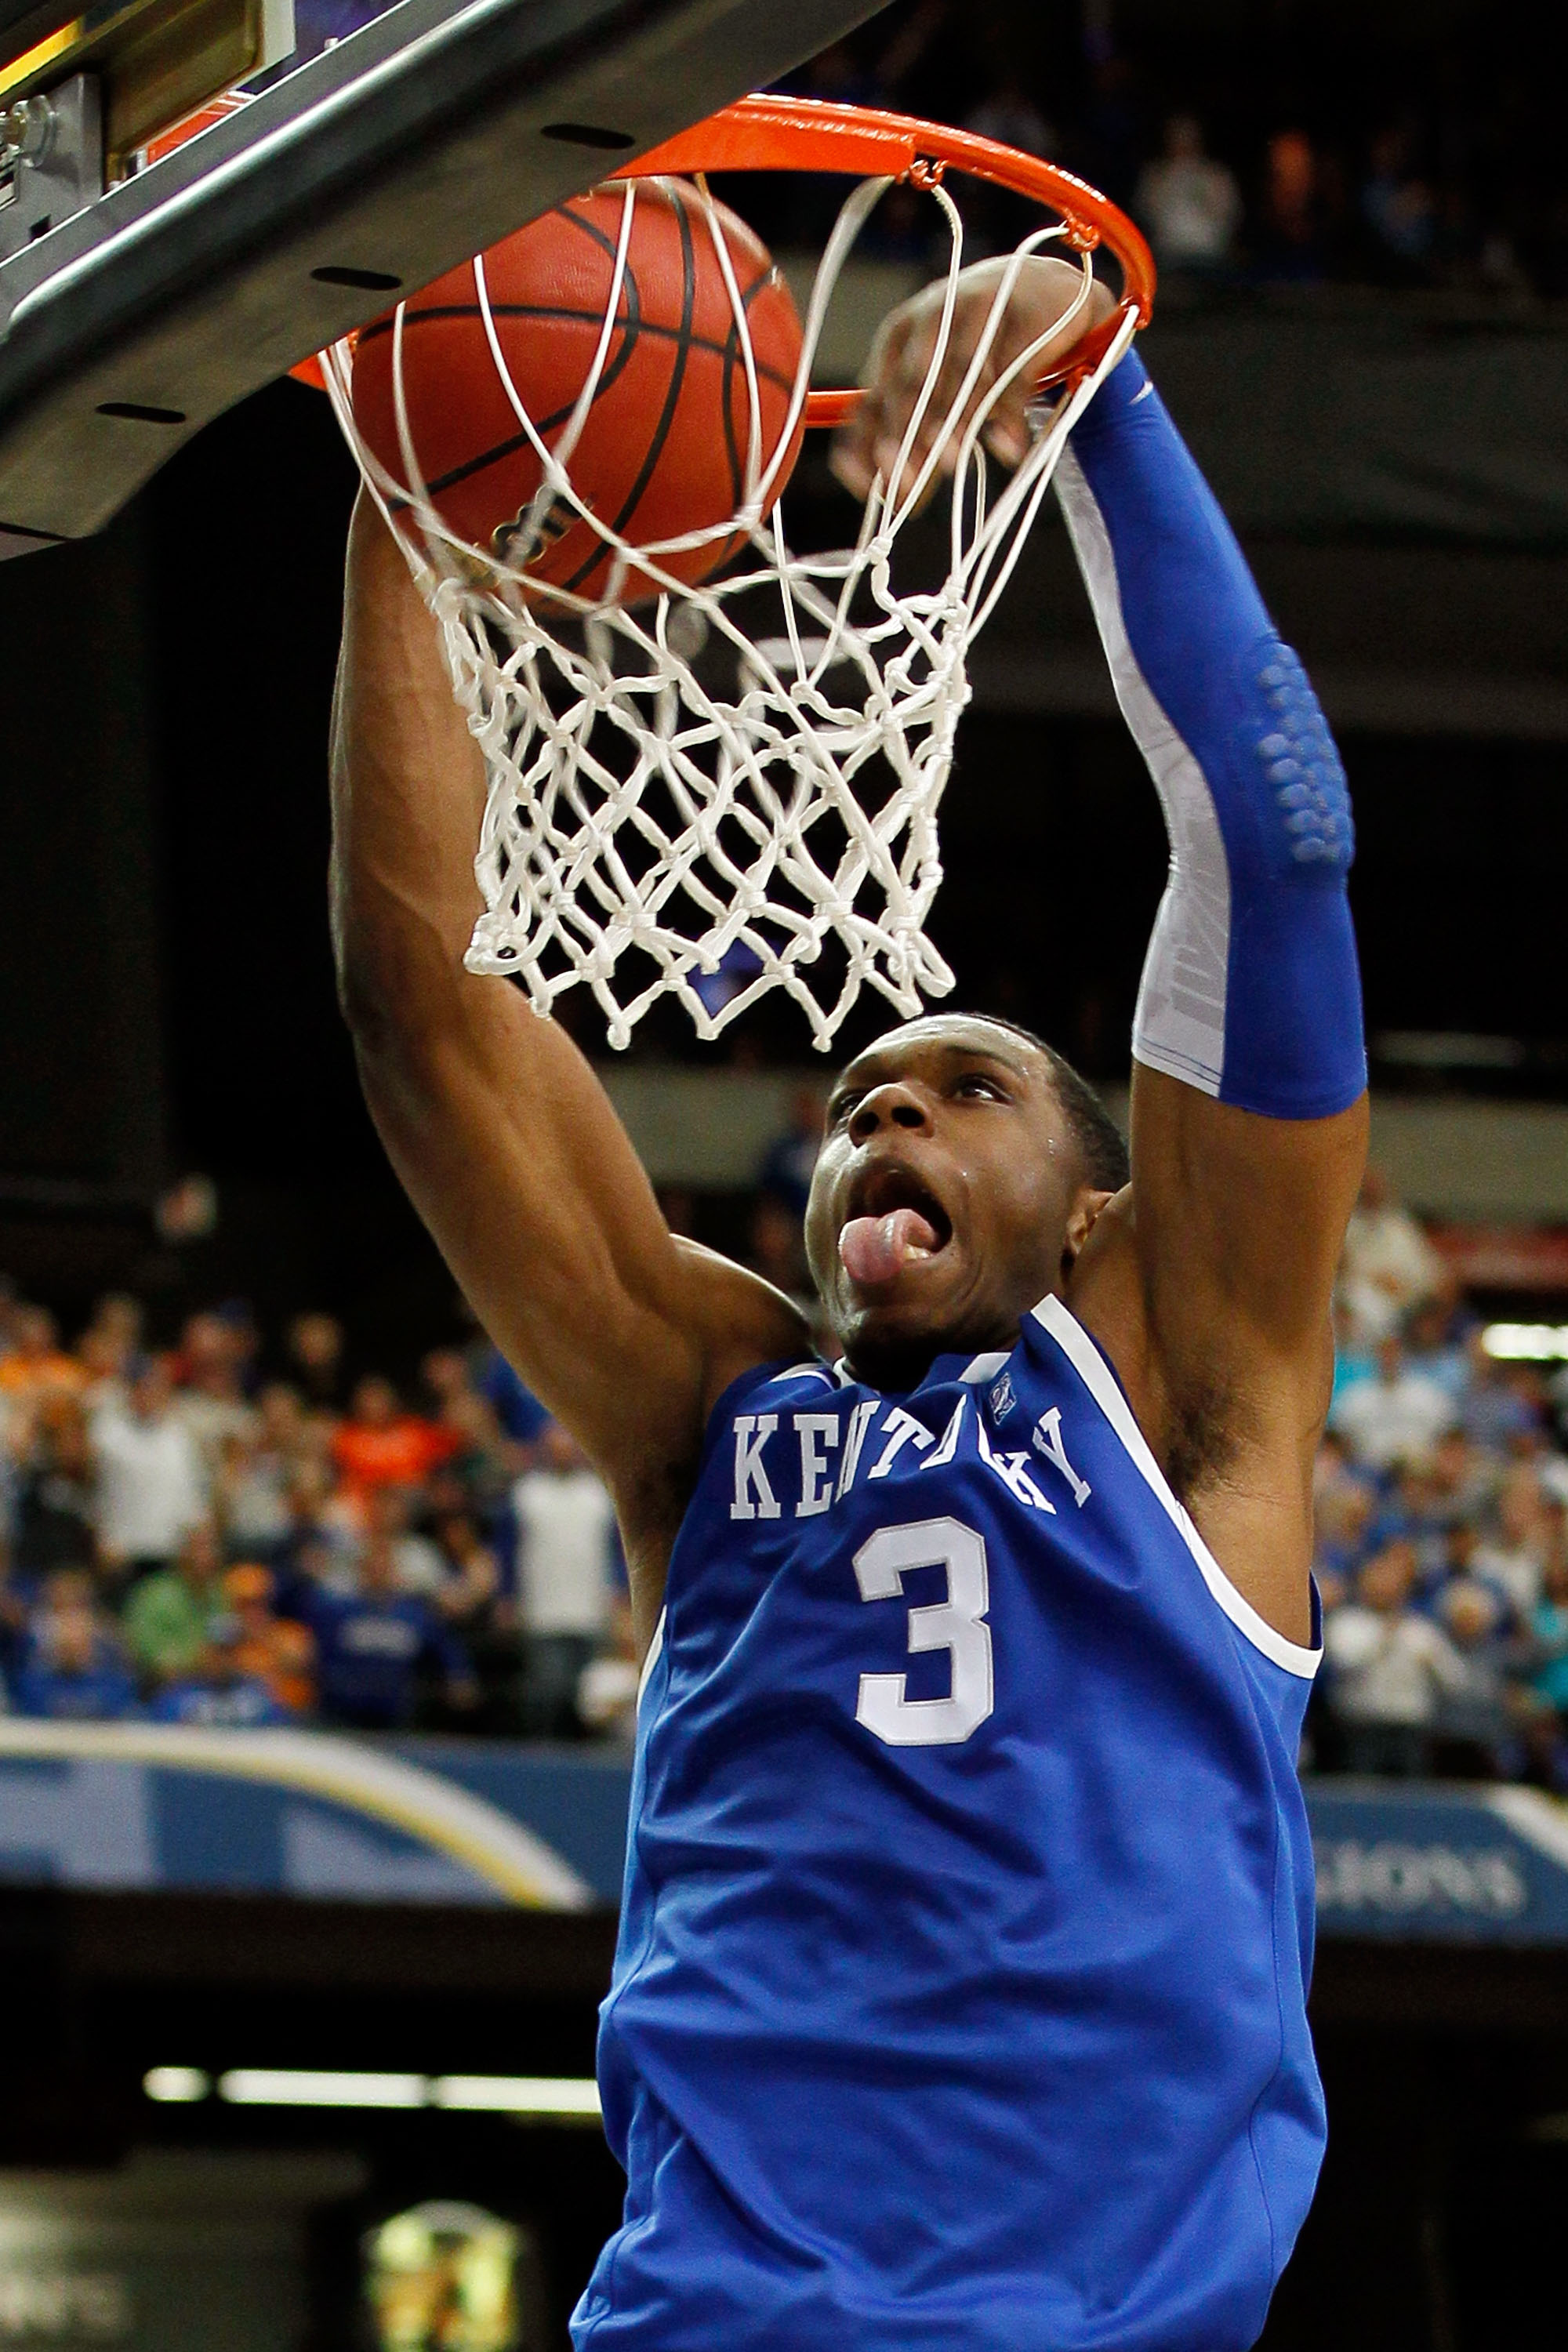 ATLANTA, GA - MARCH 12:  Terrence Jones #3 of the Kentucky Wildcats dunks against the Alabama Crimson Tide during the semifinals of the SEC Men's Basketball Tournament at Georgia Dome on March 12, 2011 in Atlanta, Georgia.  (Photo by Kevin C. Cox/Getty Im